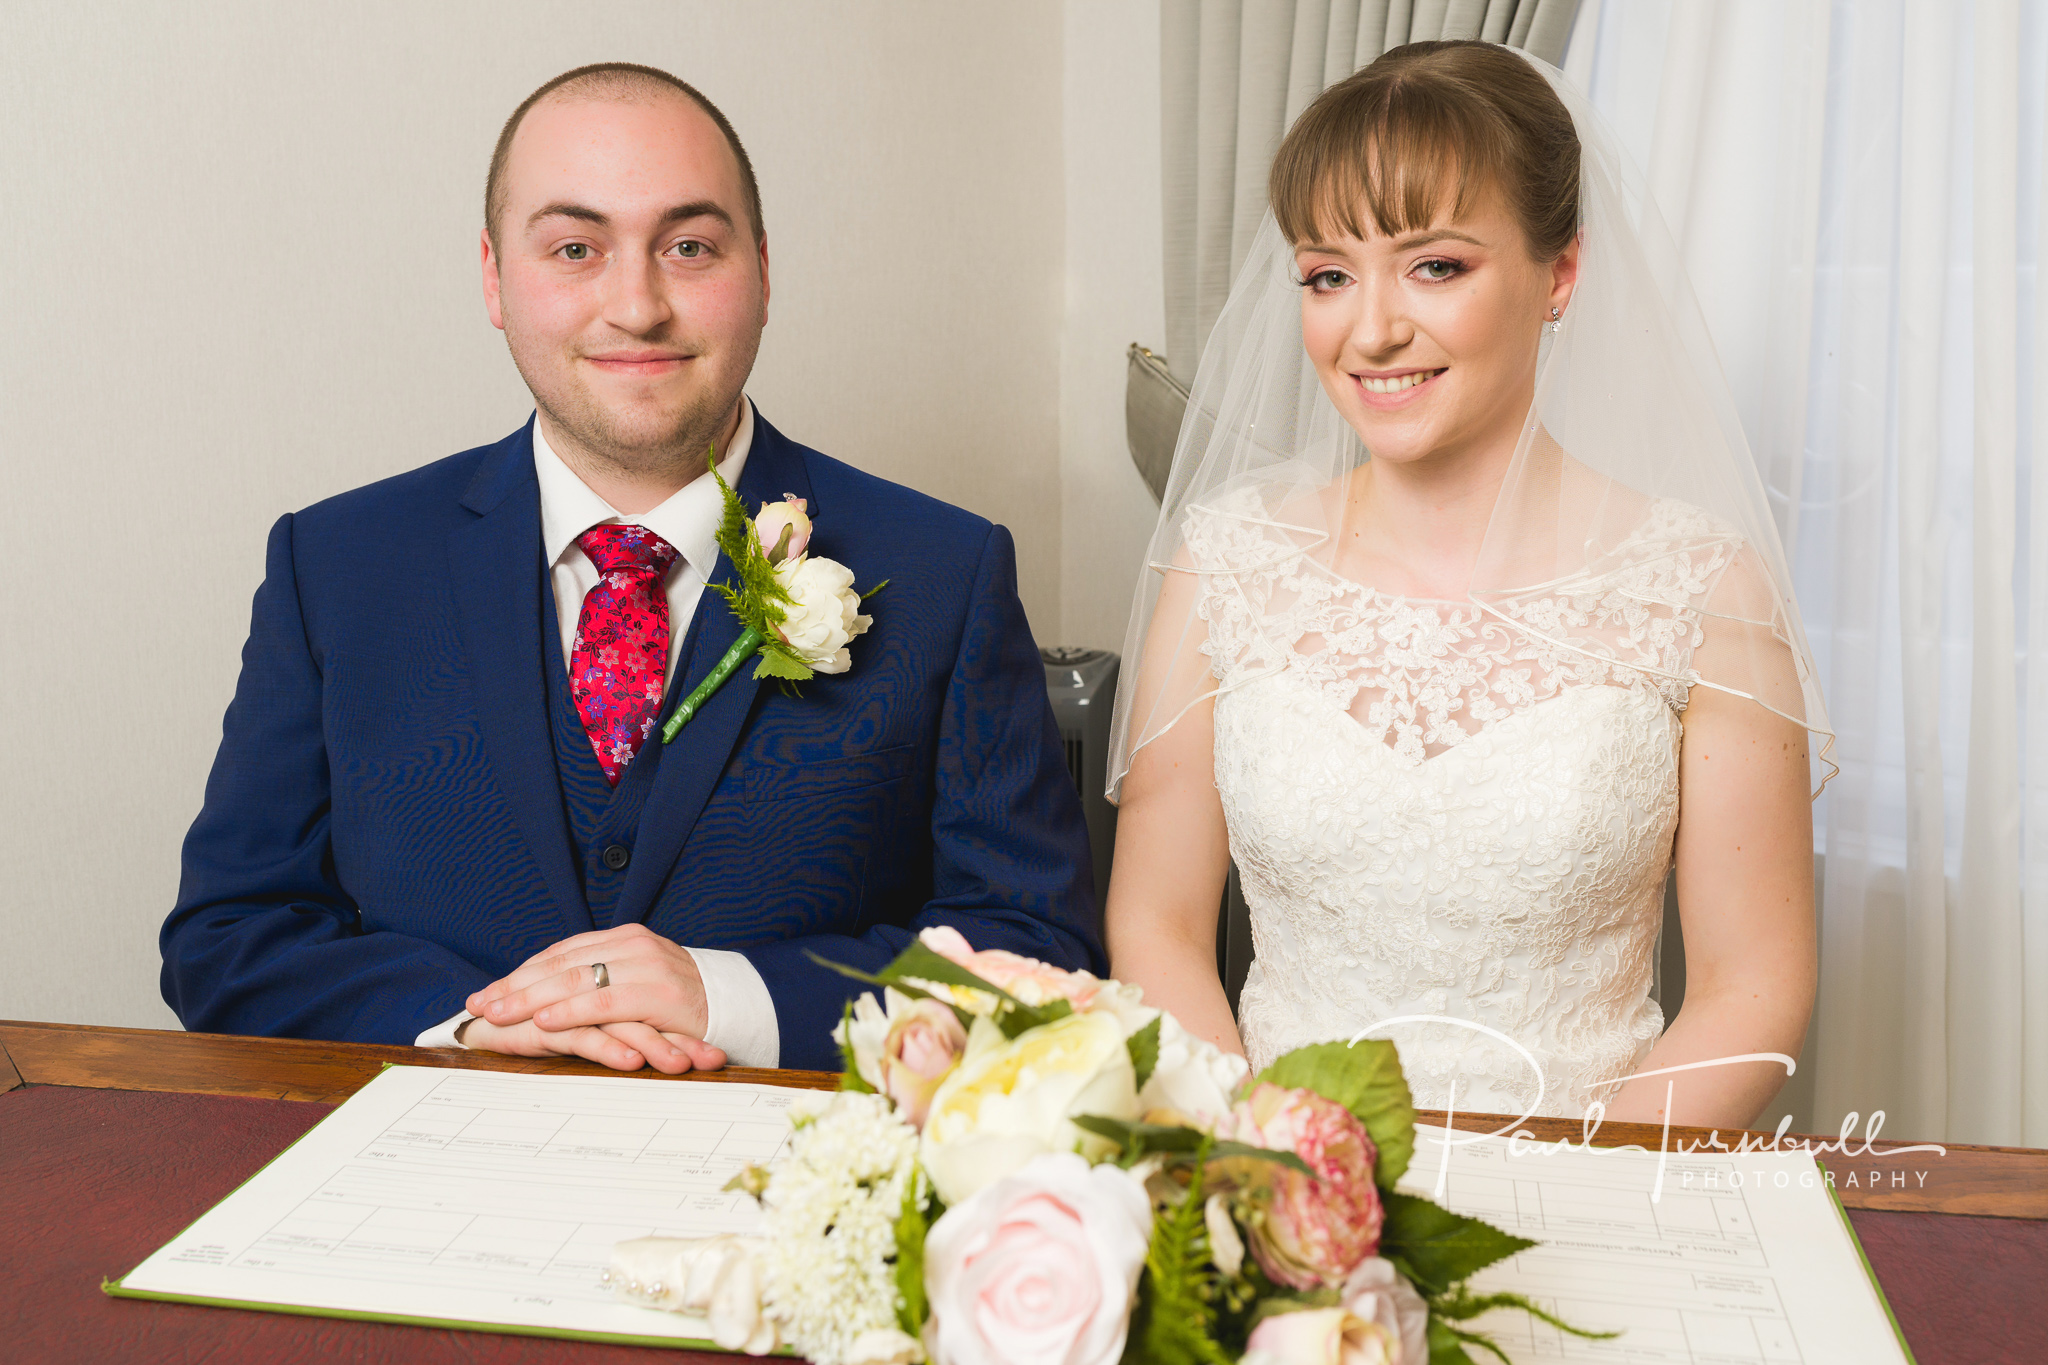 wedding-photographer-pontefract-yorkshire-laura-keanu-040.jpg